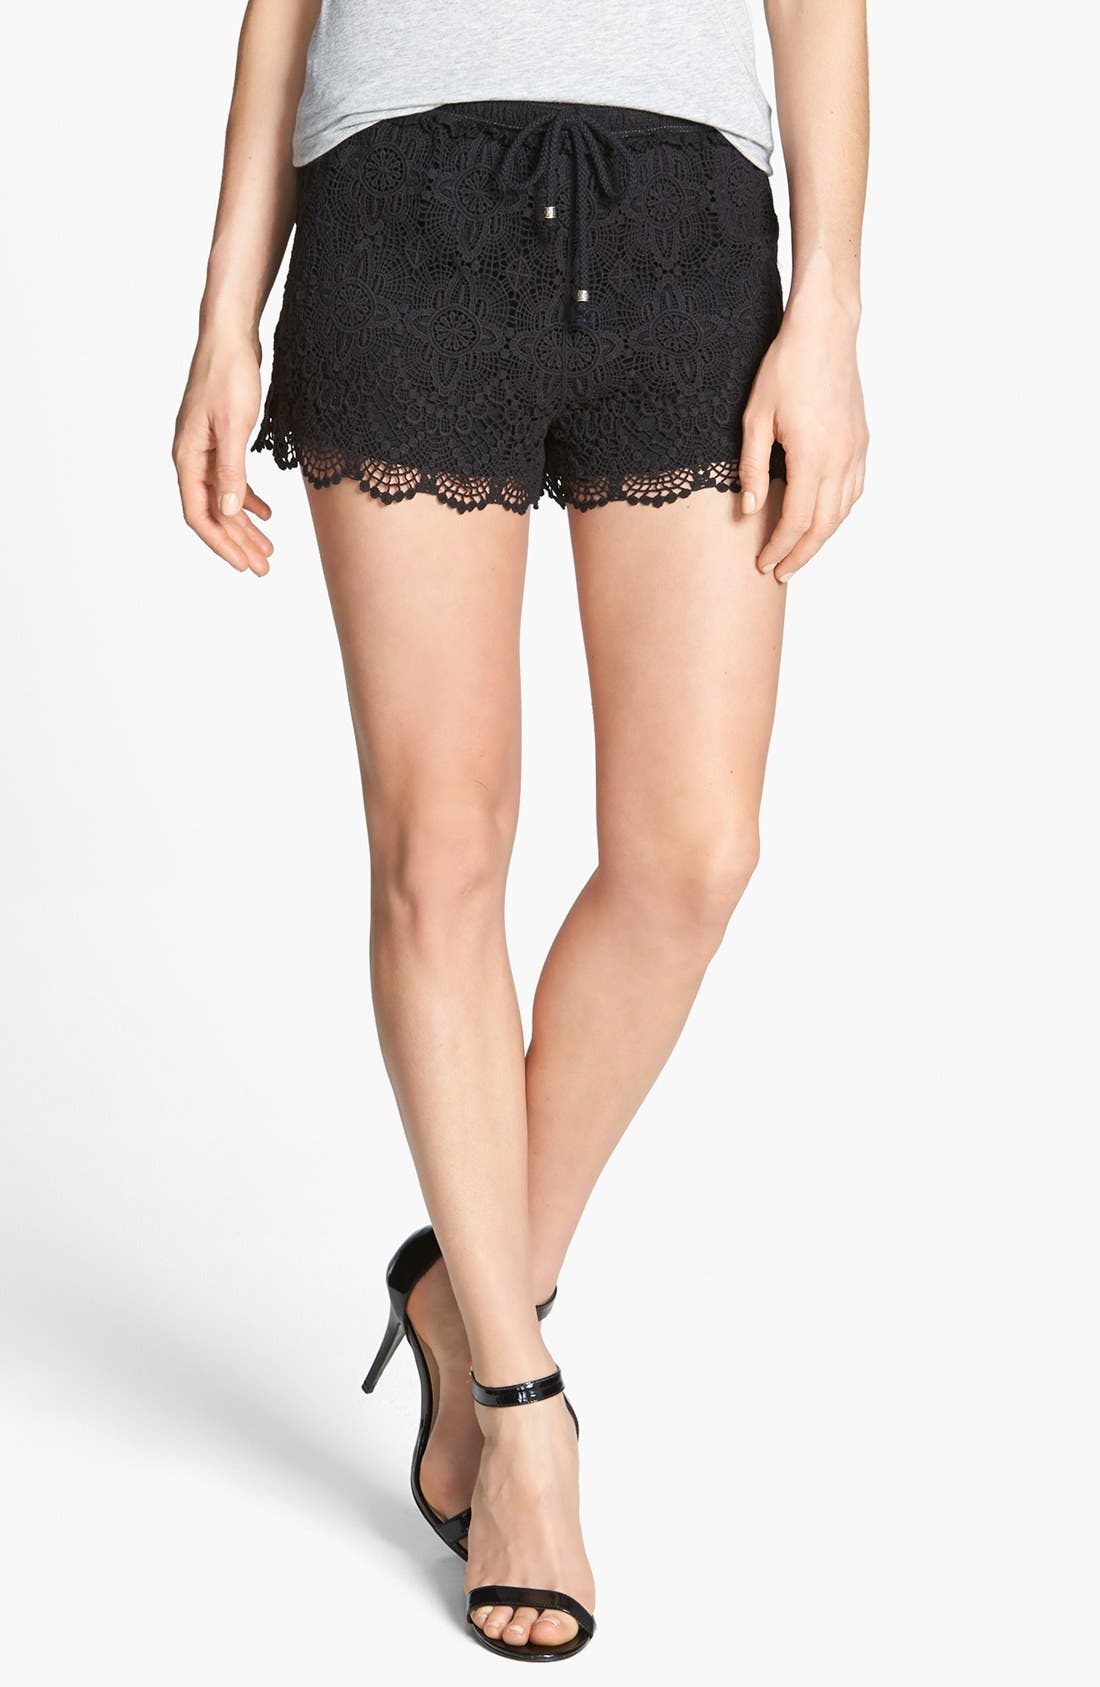 TWO BY VINCE CAMUTO, Floral Lace Shorts, Main thumbnail 1, color, 001